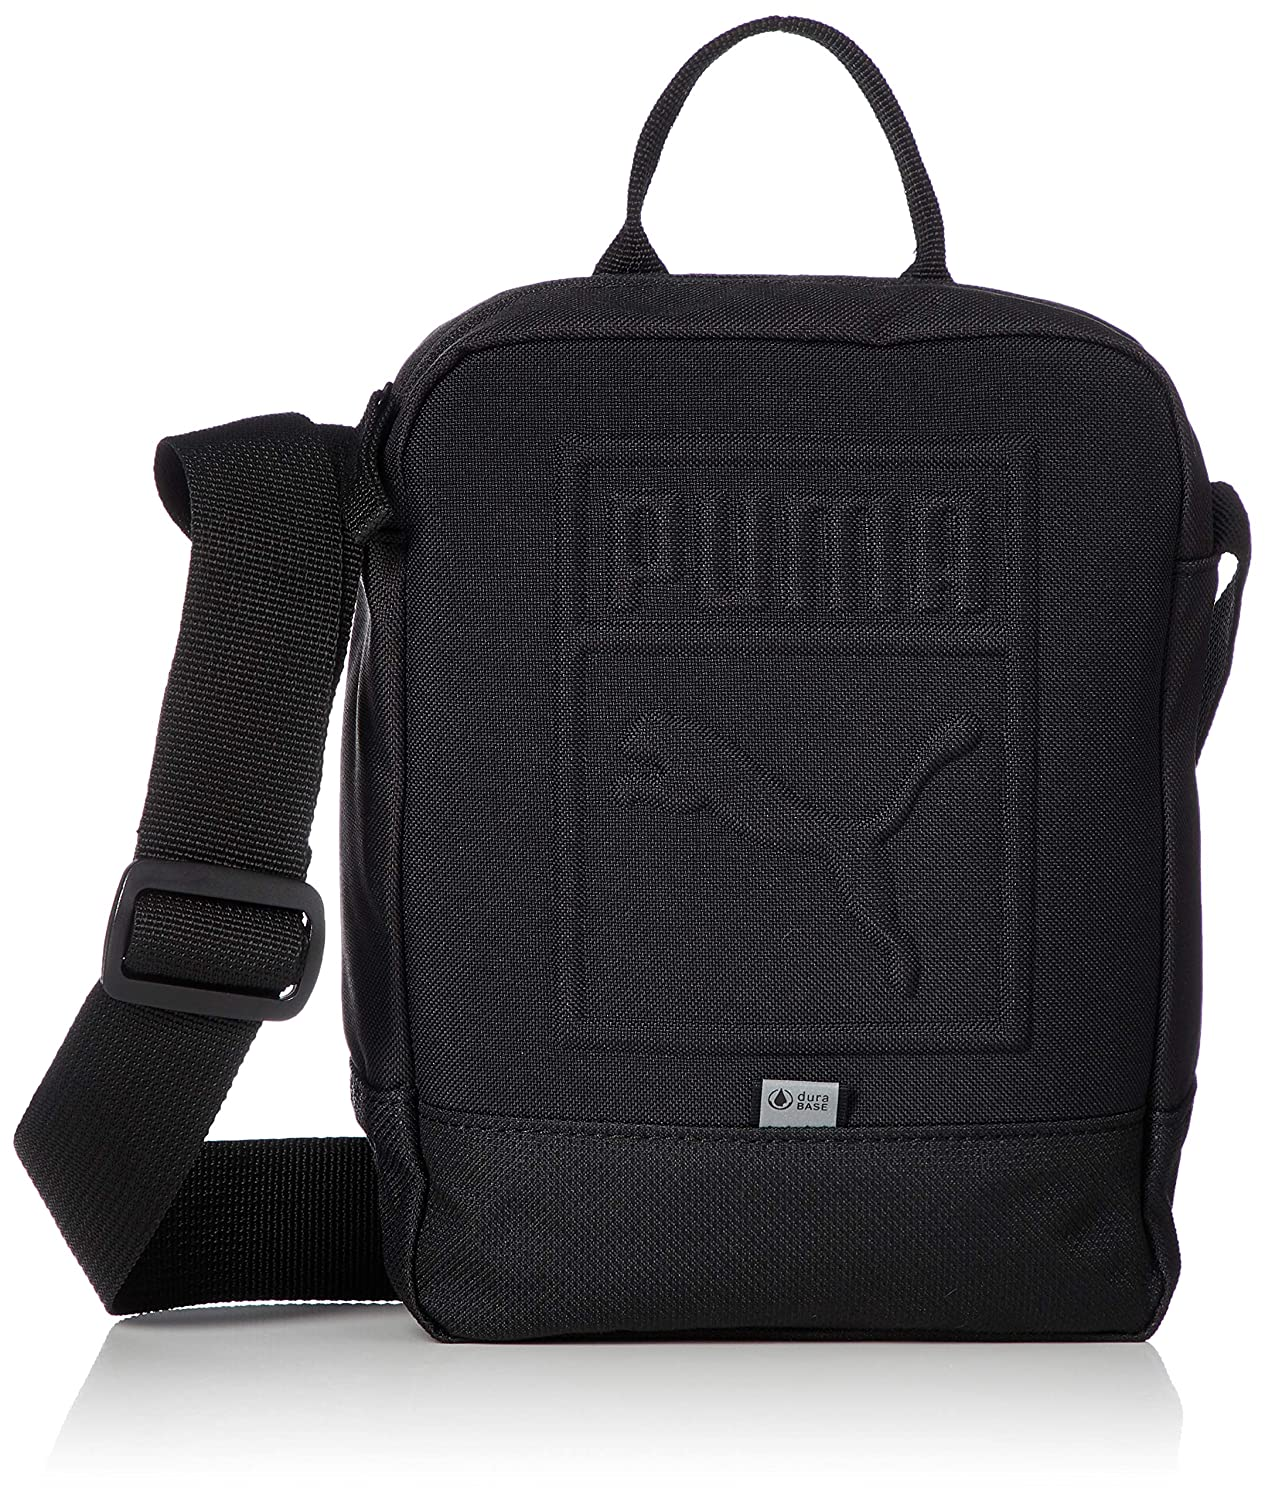 690f9aa32486 Puma Polyester 17 cms Black Messenger Bag (7558201)  Amazon.in  Bags ...